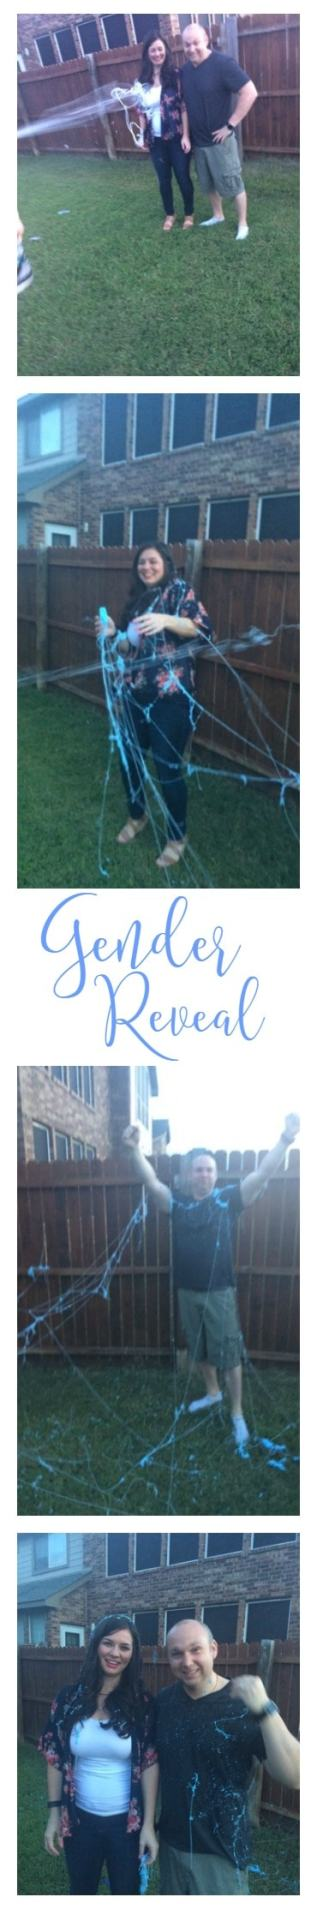 Gender Reveal Party with Silly String